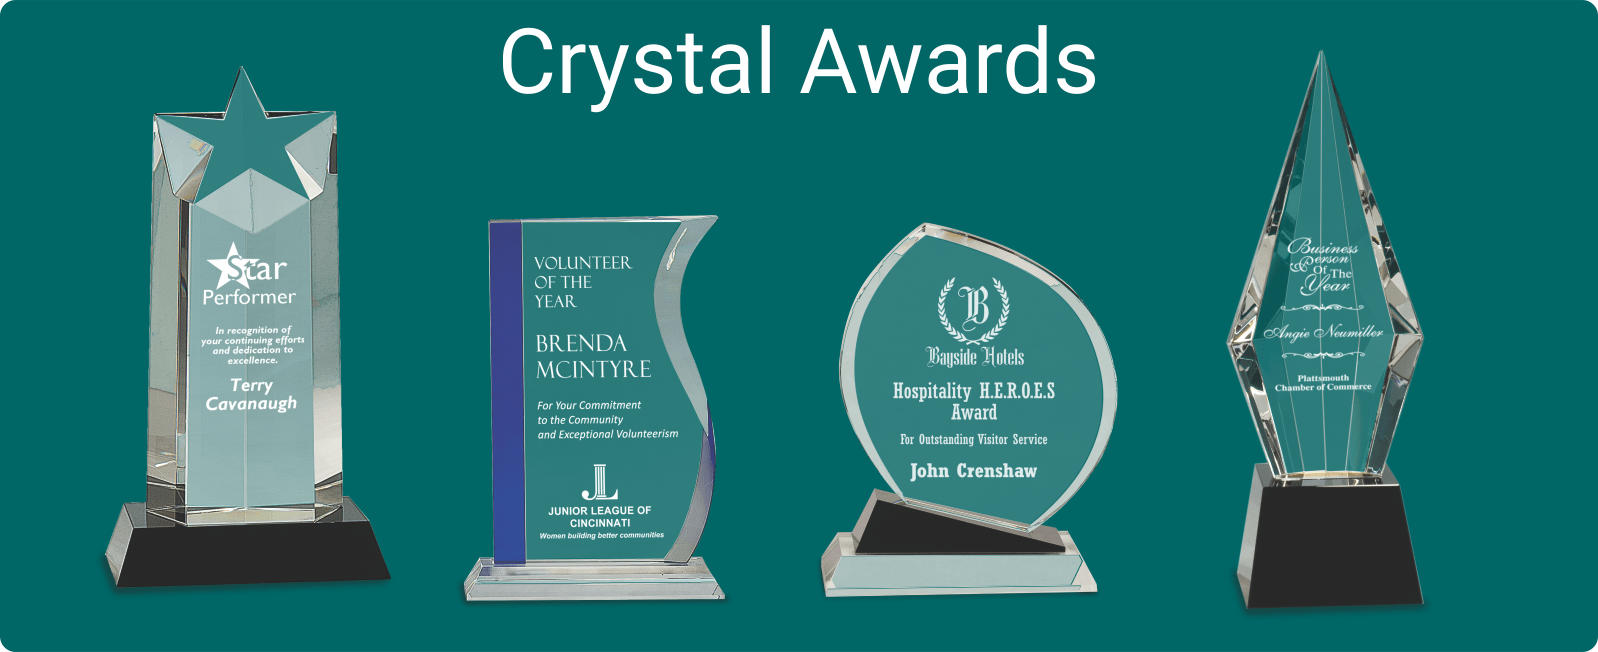 Crystal Awards